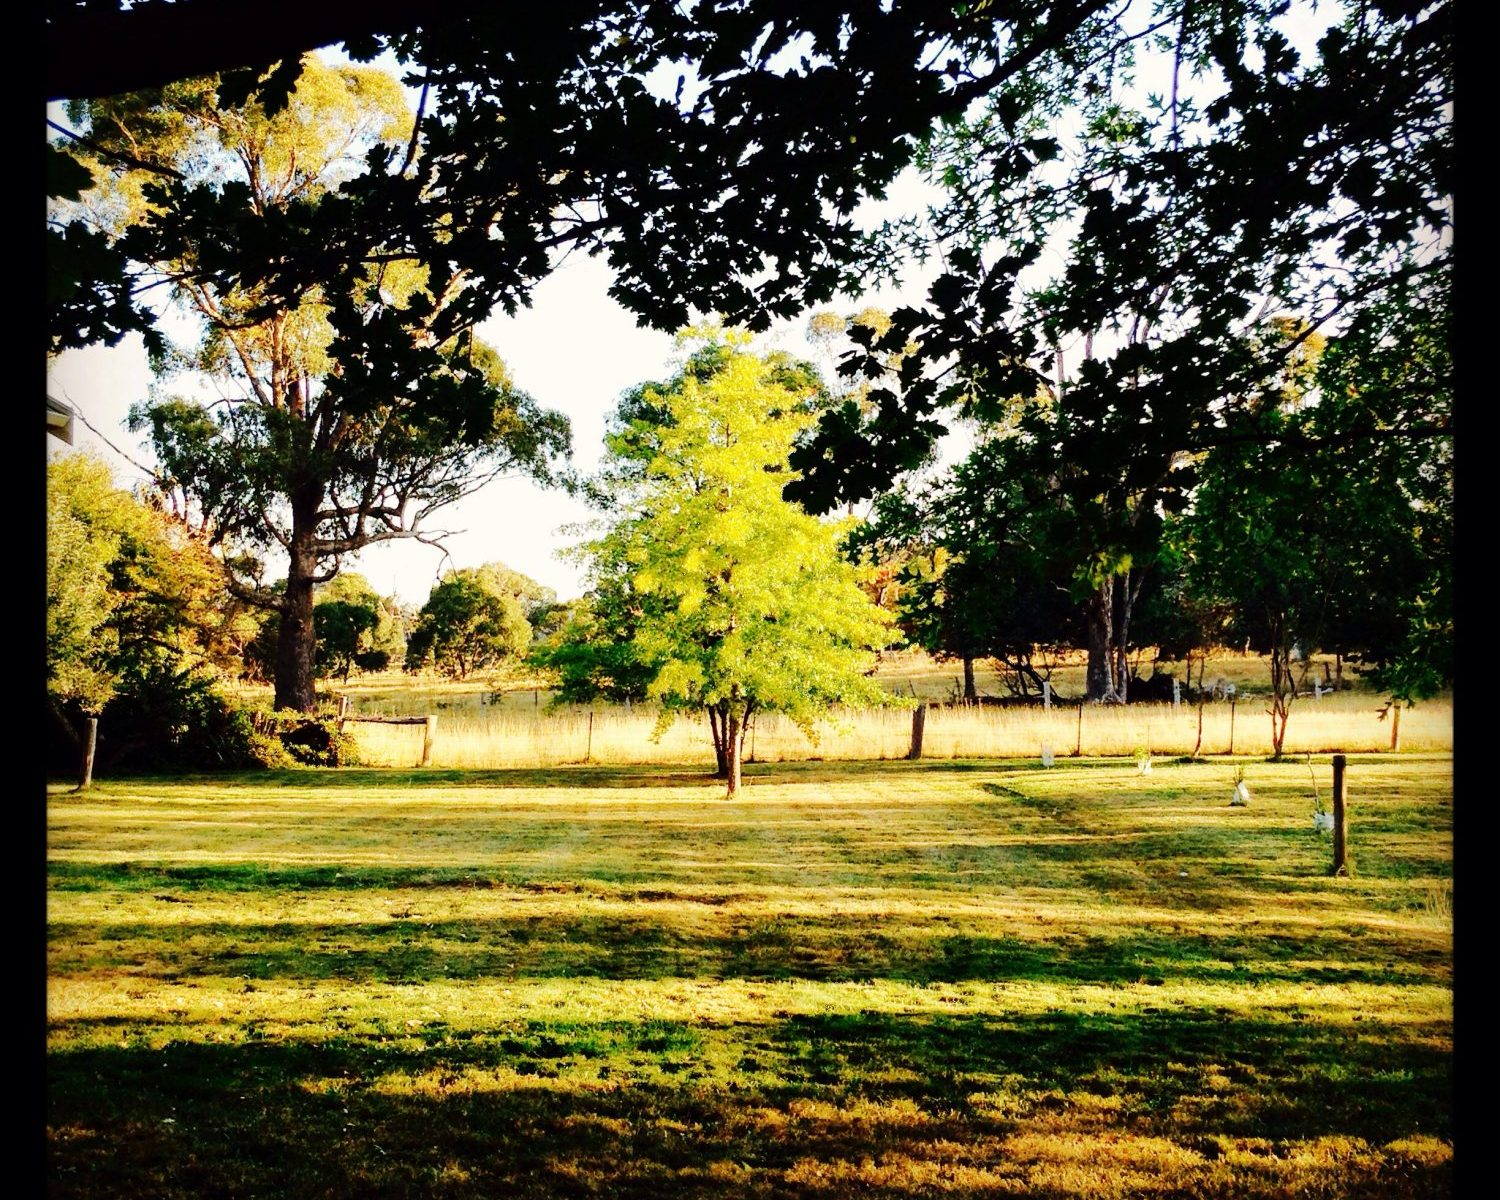 The lawn freshly mown